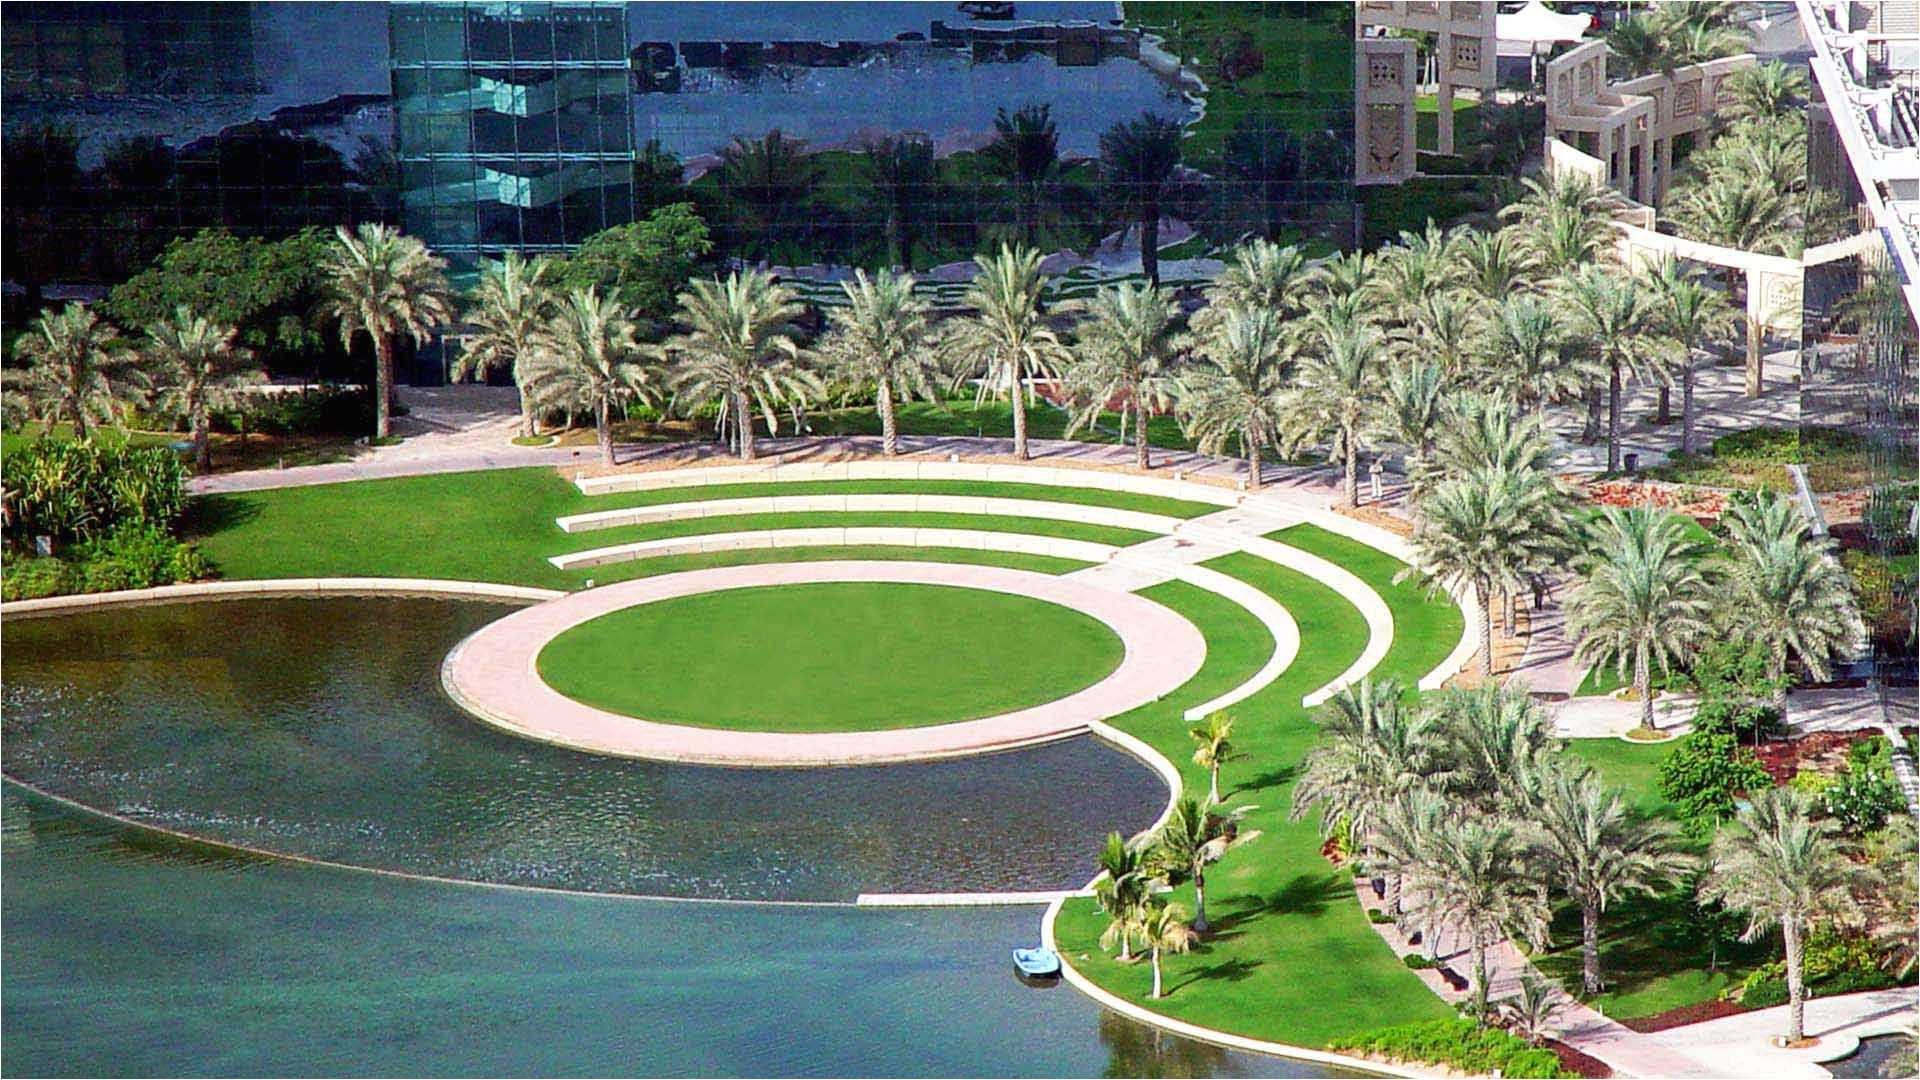 cracknell landscaping design landscape architecture dubai london award winning planning urban design landscaping design build